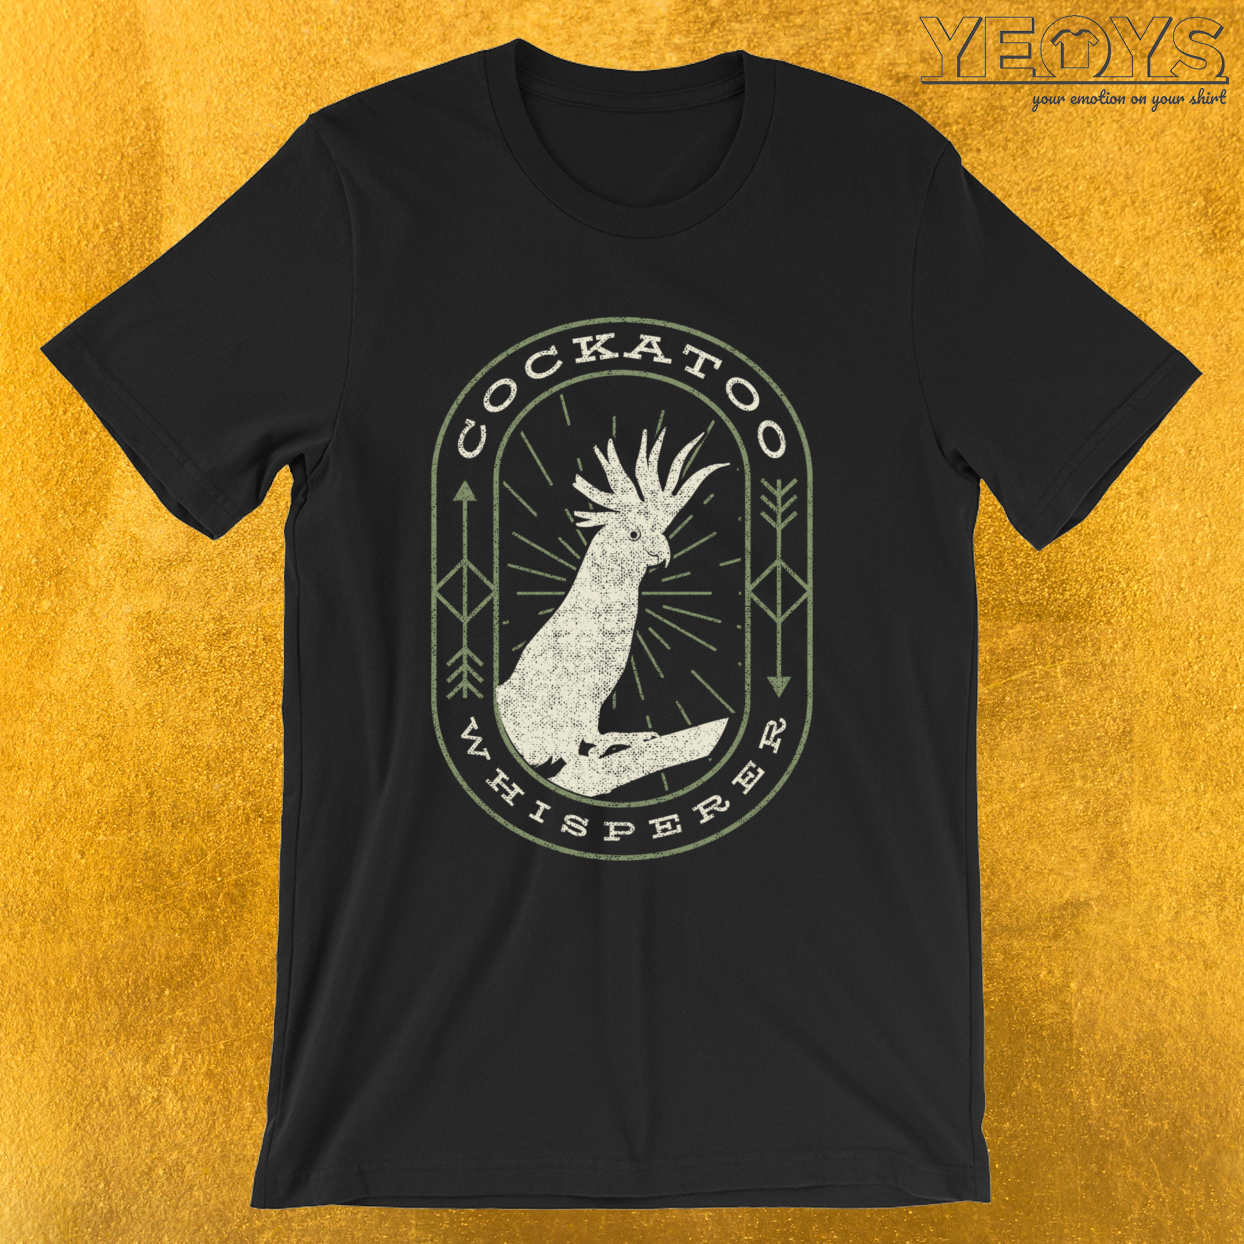 Cockatoo Whisperer – Funny Parrot Cockatoo Tee